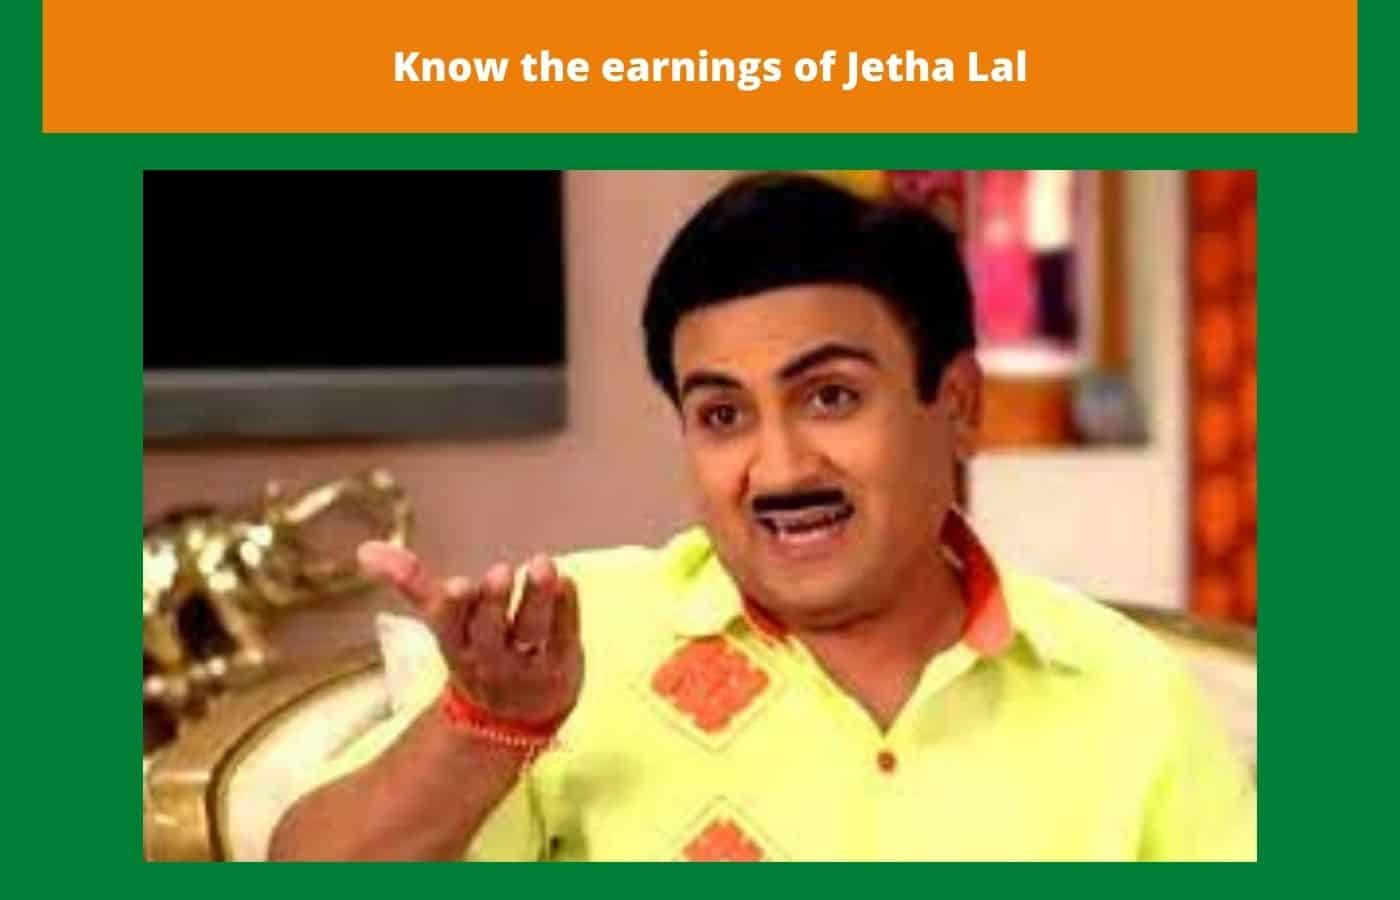 Know the earnings of Jetha Lal